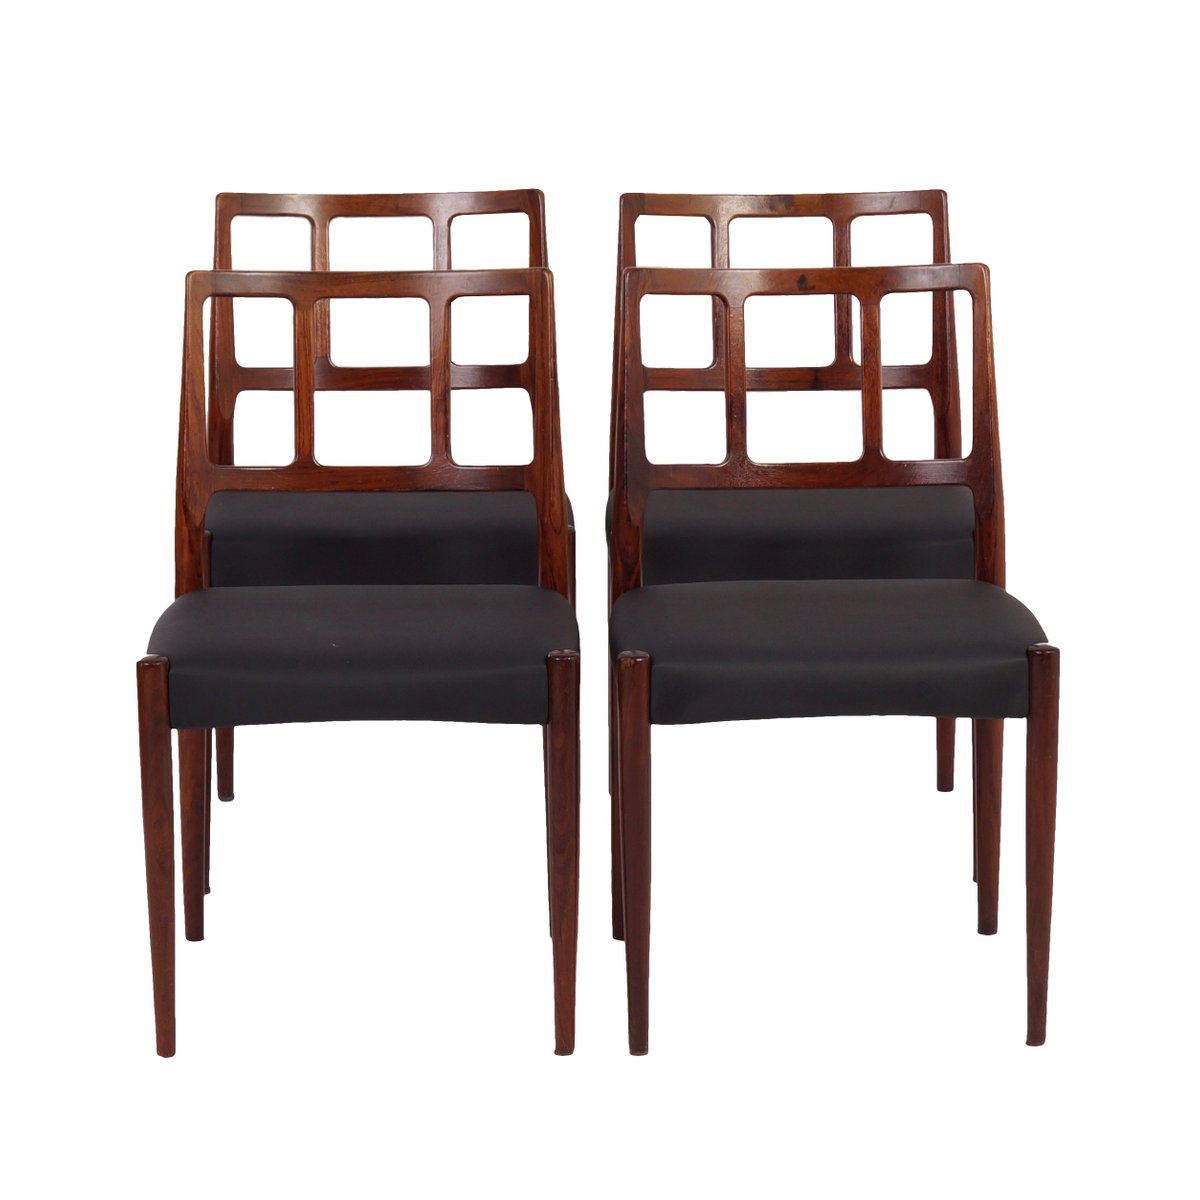 1960s Style Furniture danish dining chairsjohannes andersen for uldum møbelfabrik